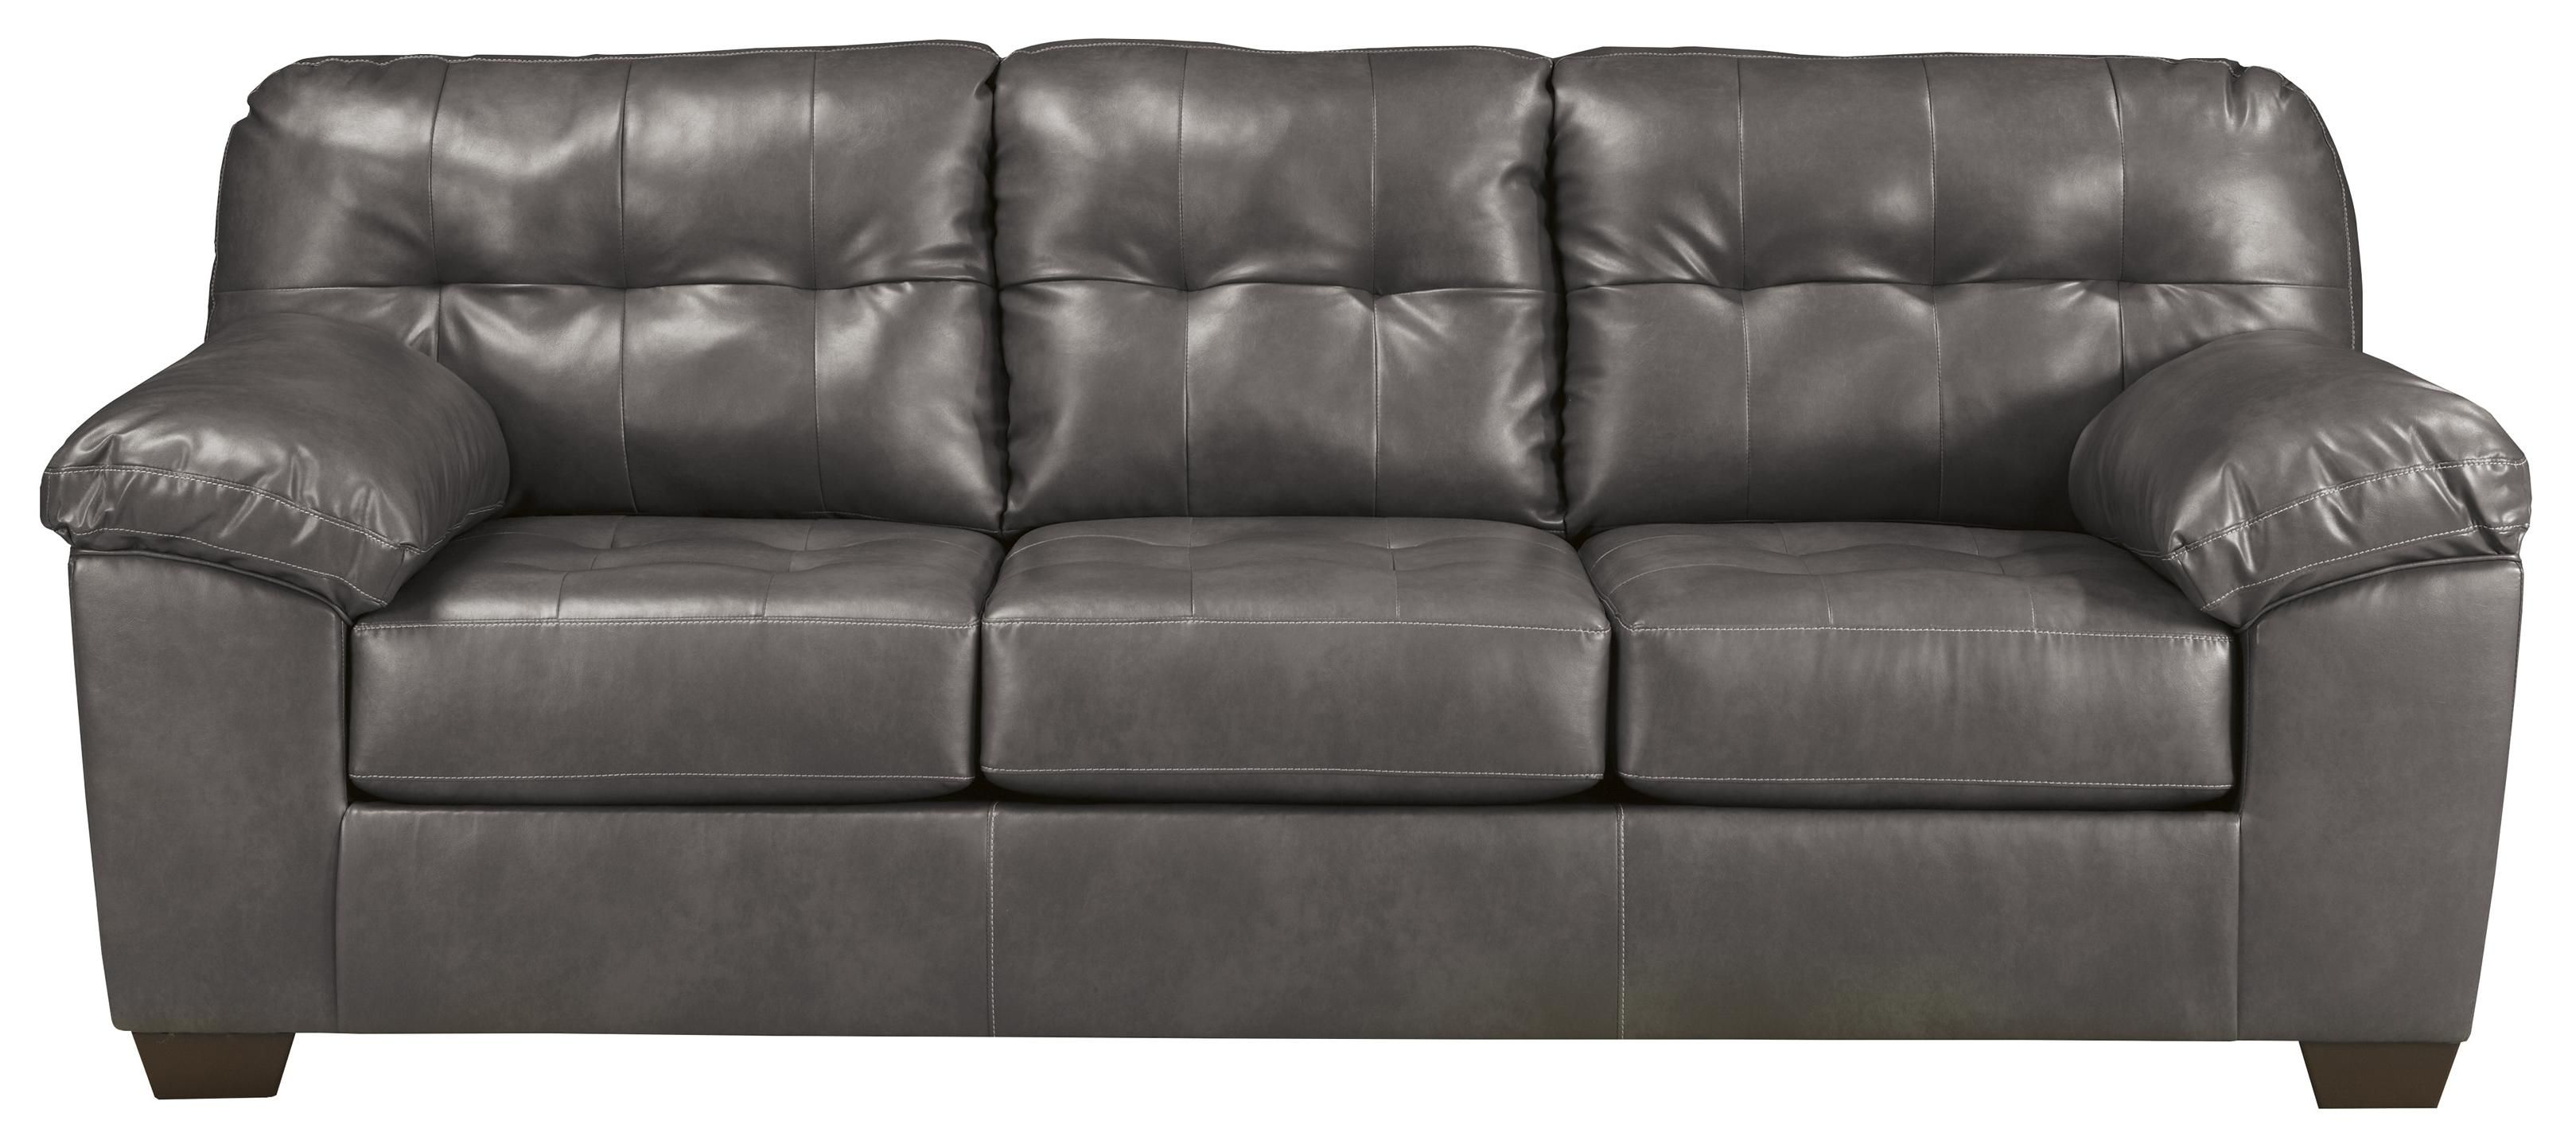 Alliston Durablend Gray Queen Sofa Sleeper By Signature Design By Ashley Love Seat Leather Sofa And Loveseat